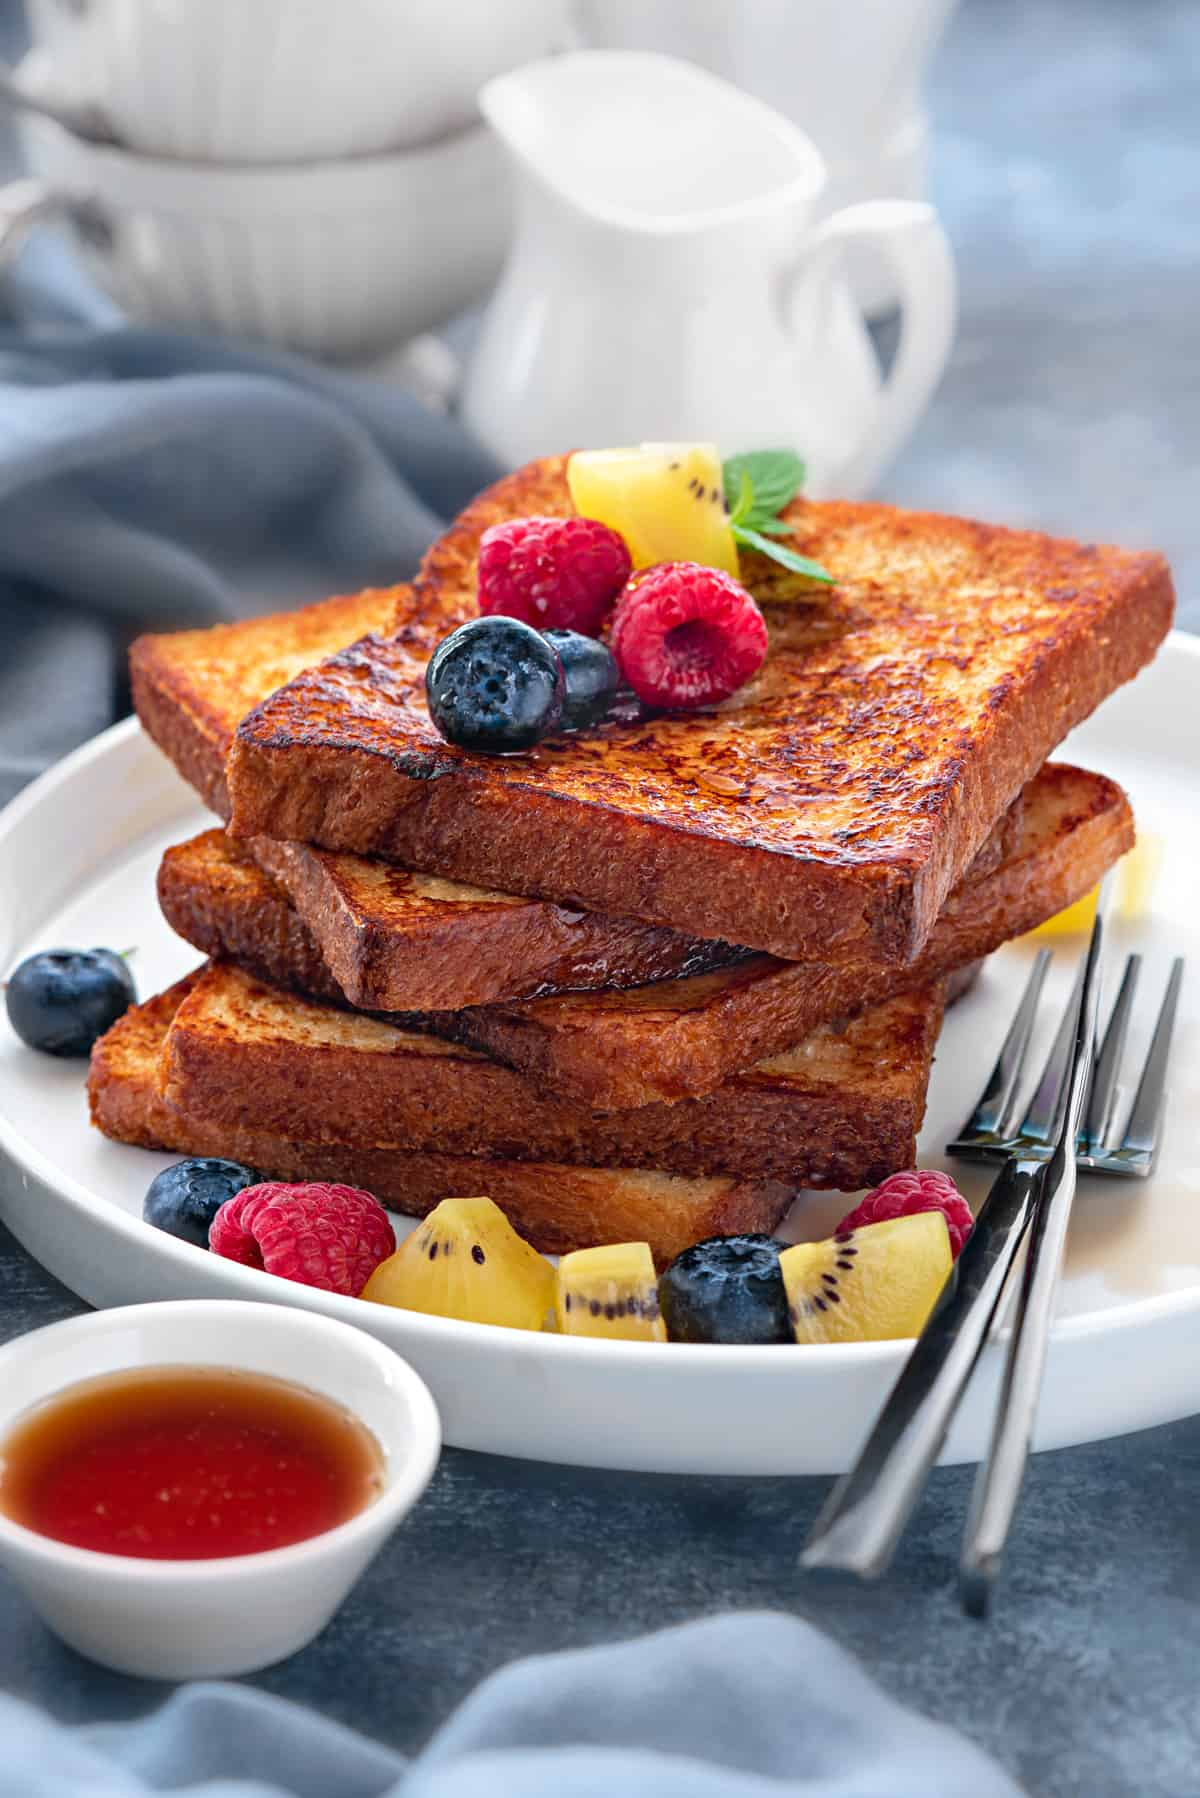 Stack of 5 slices of brioche french toast on a white plate topped with fresh fruits.